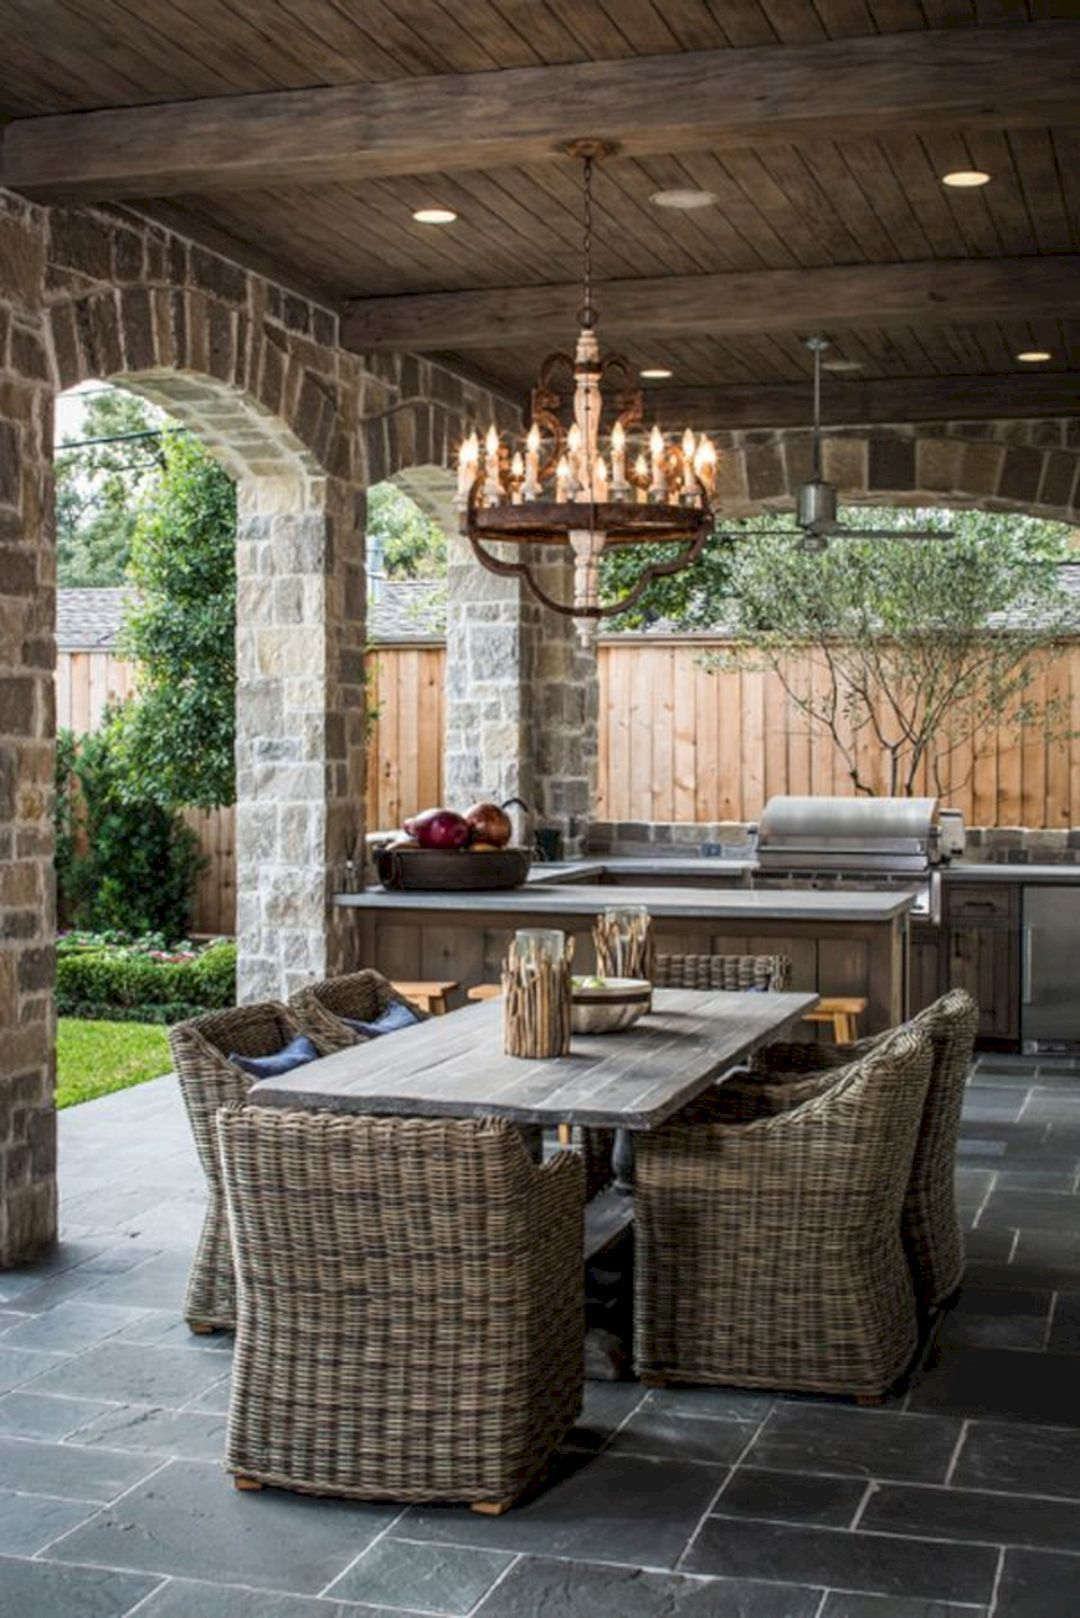 Best Ideas French Country Style Home Designs 26 Porches Patios